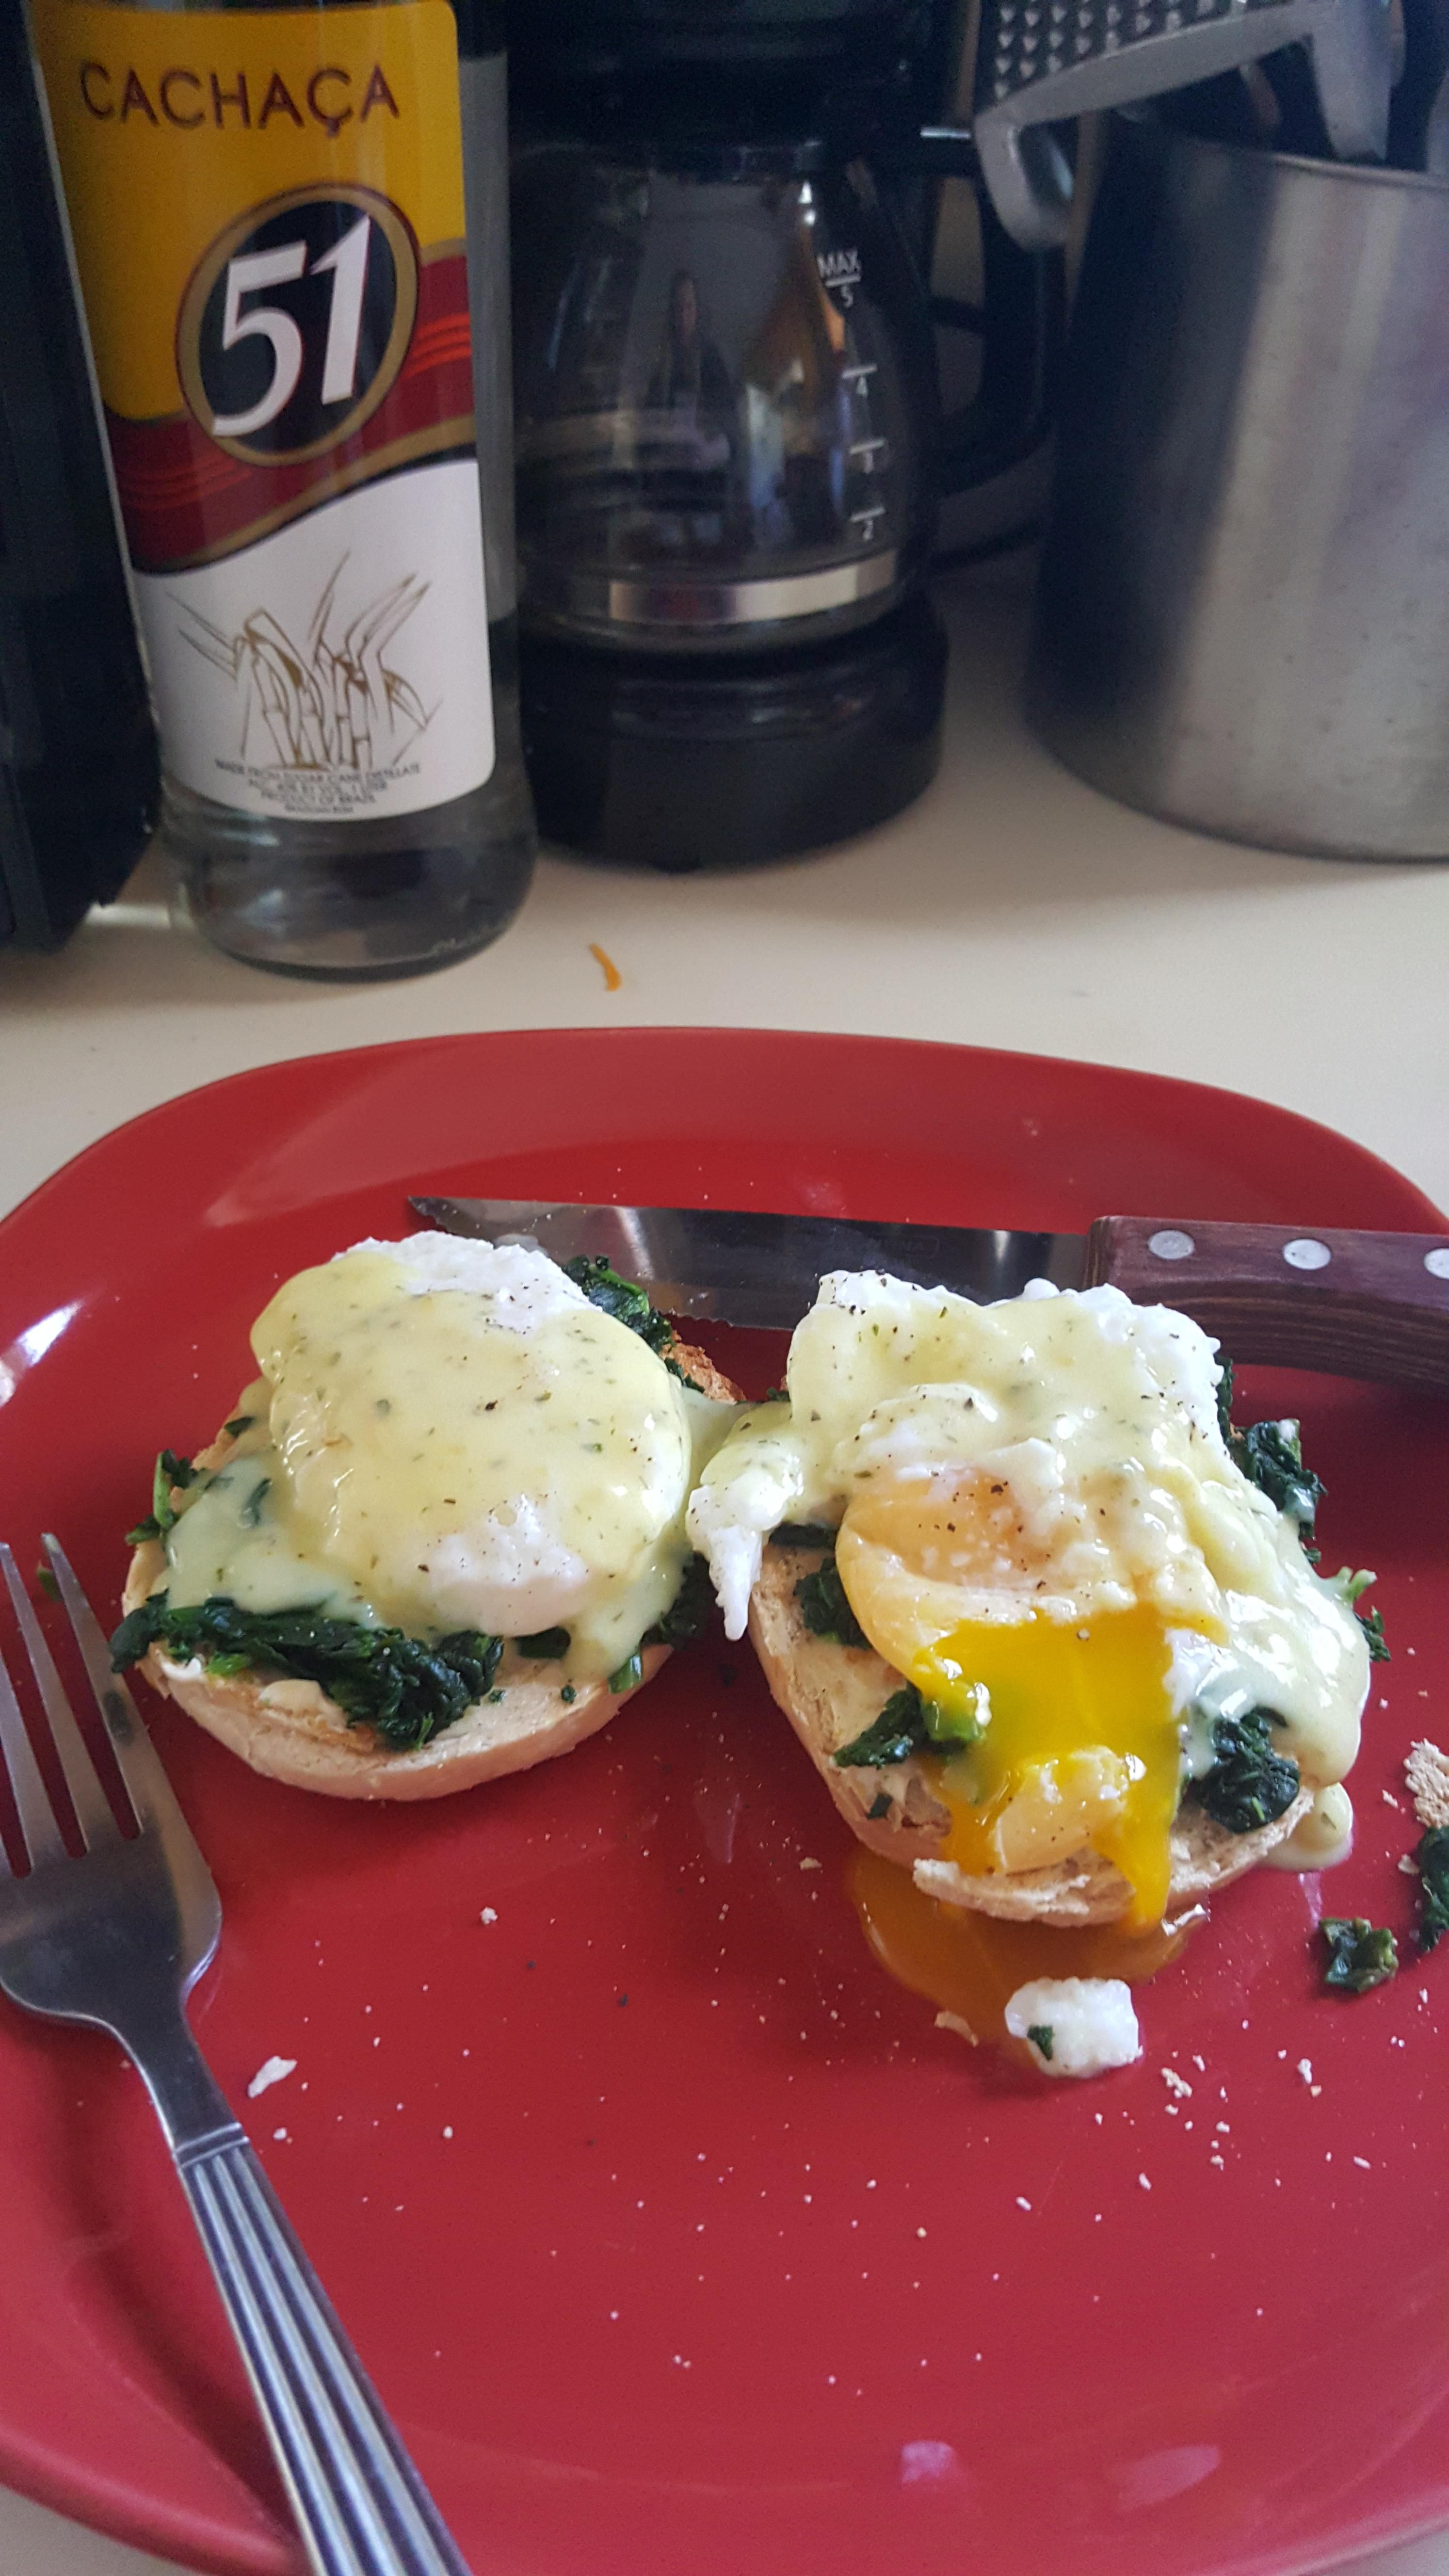 Eggs benny #cookery #cooking #food #recipes #kitchen #cookbook #baking #school #MargueritePatten #LLm